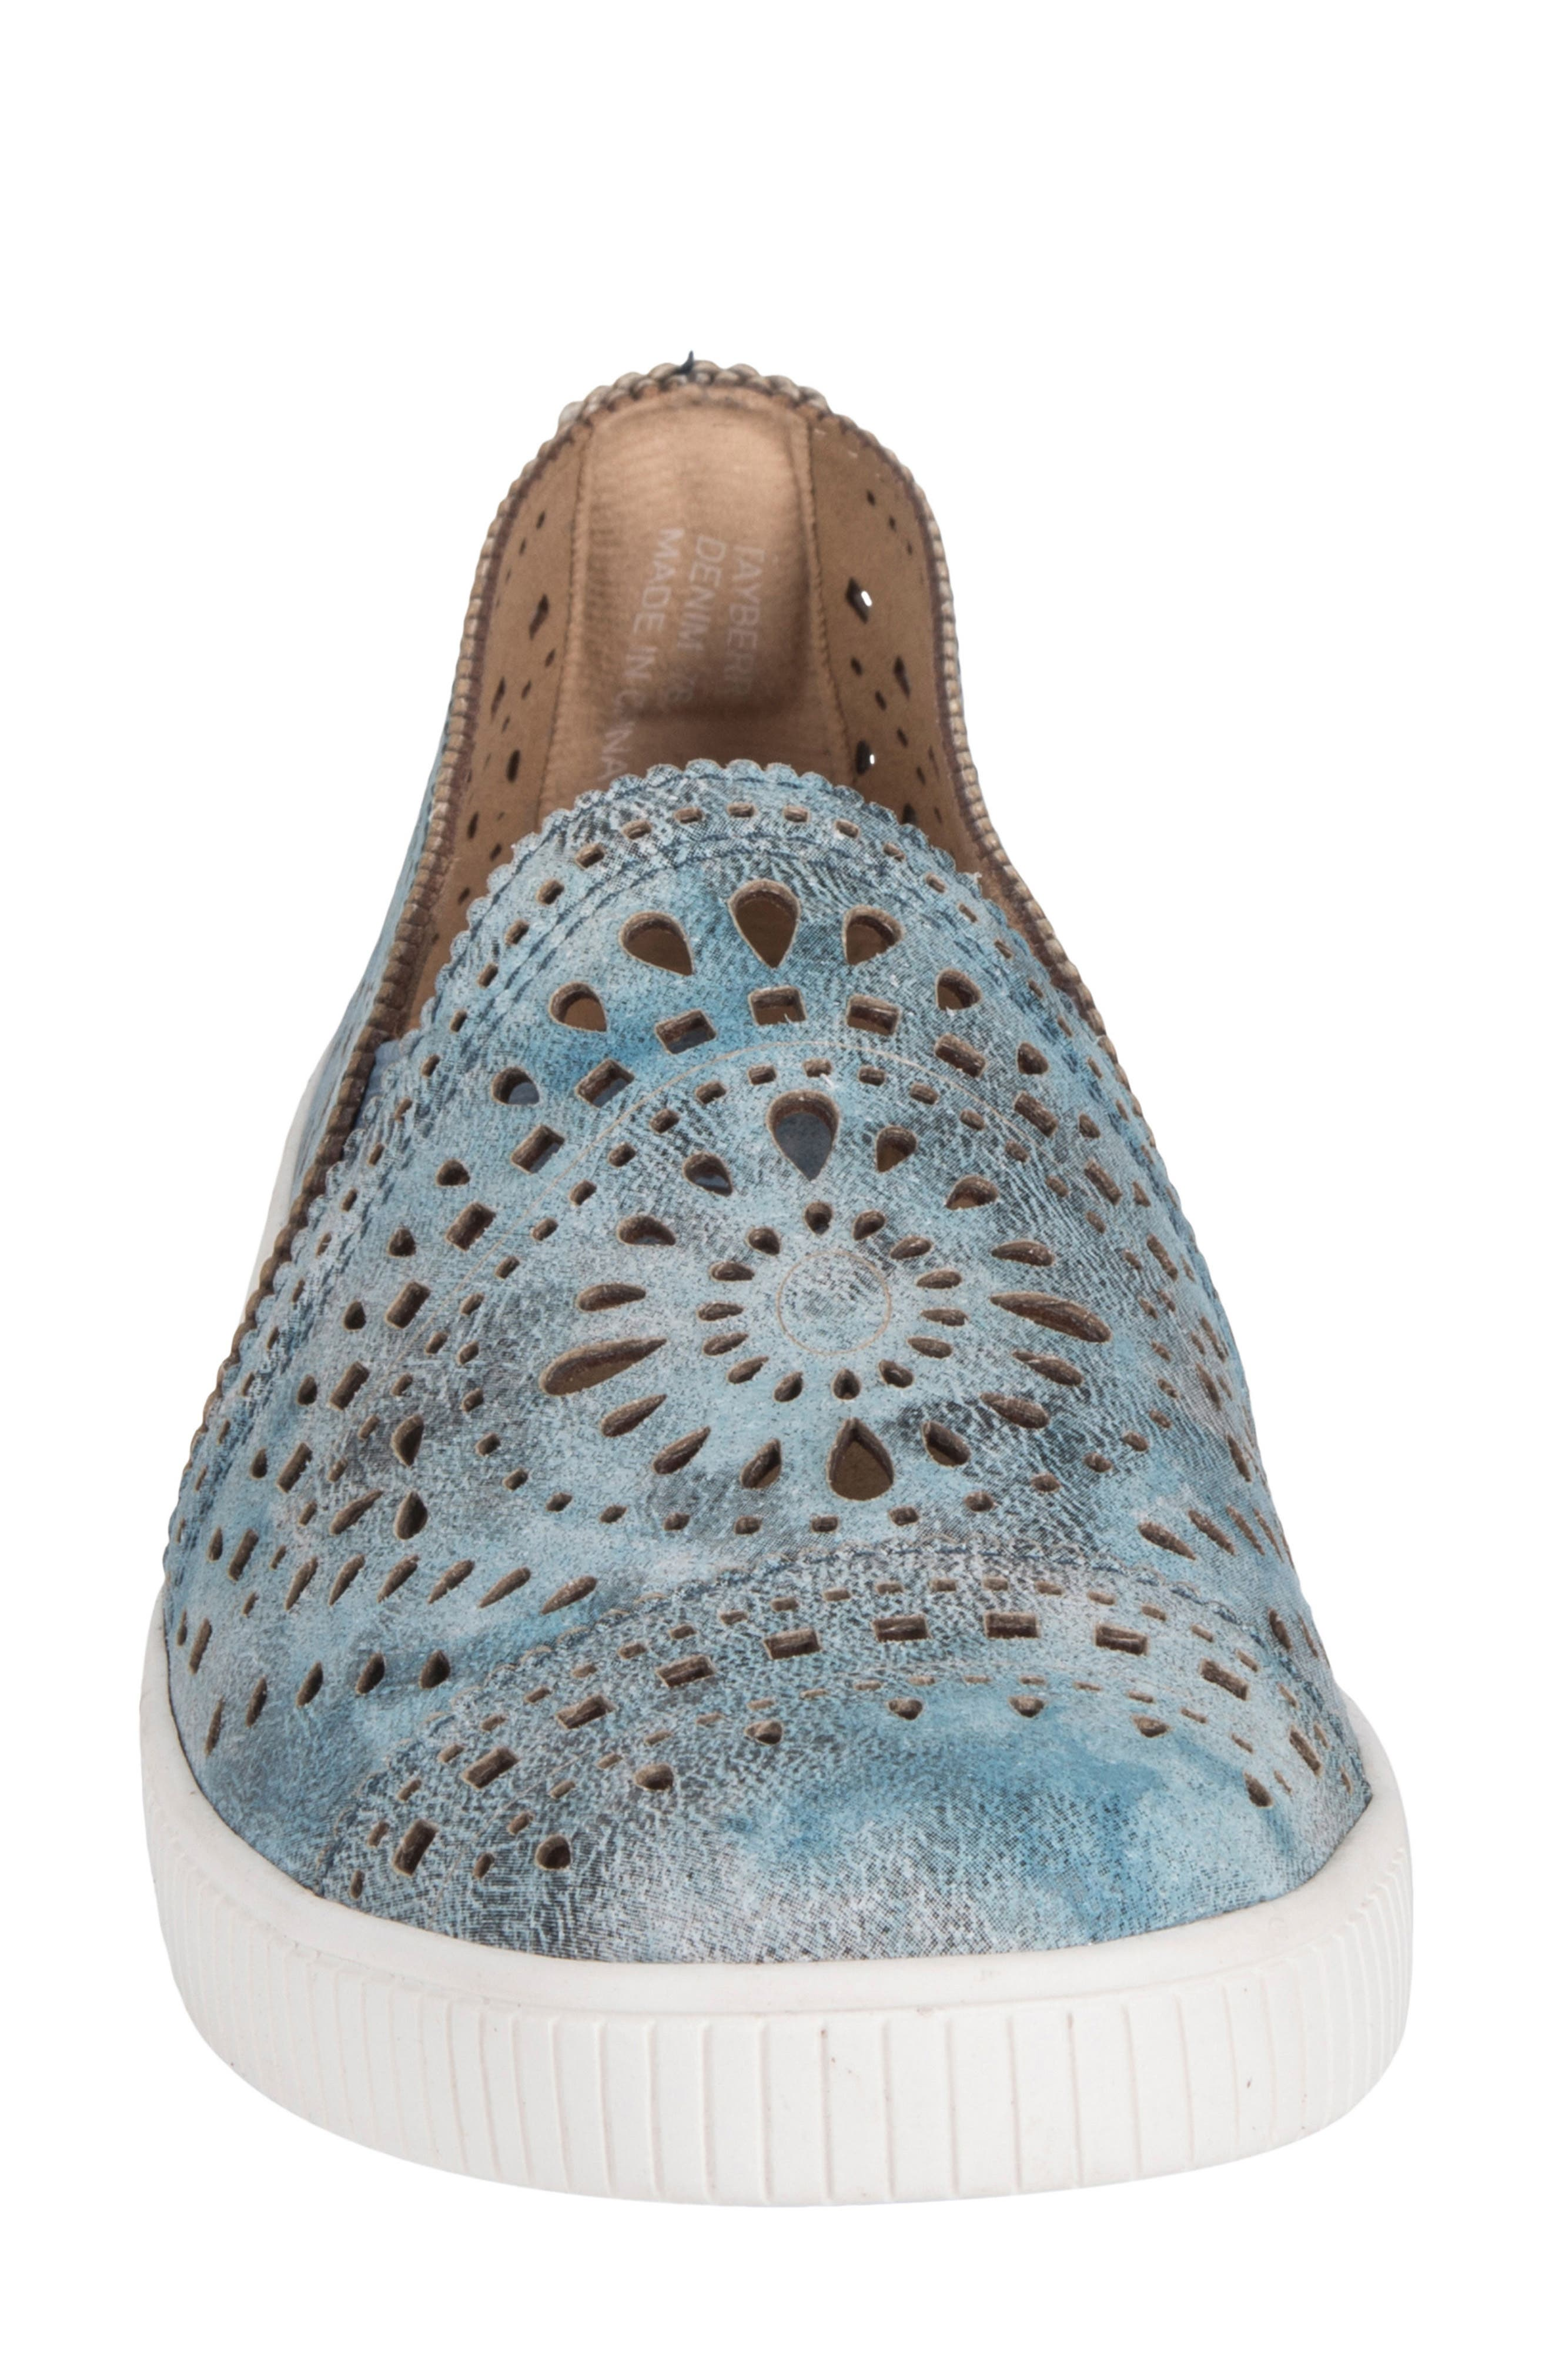 Tayberry Perforated Slip-On Sneaker,                             Alternate thumbnail 15, color,